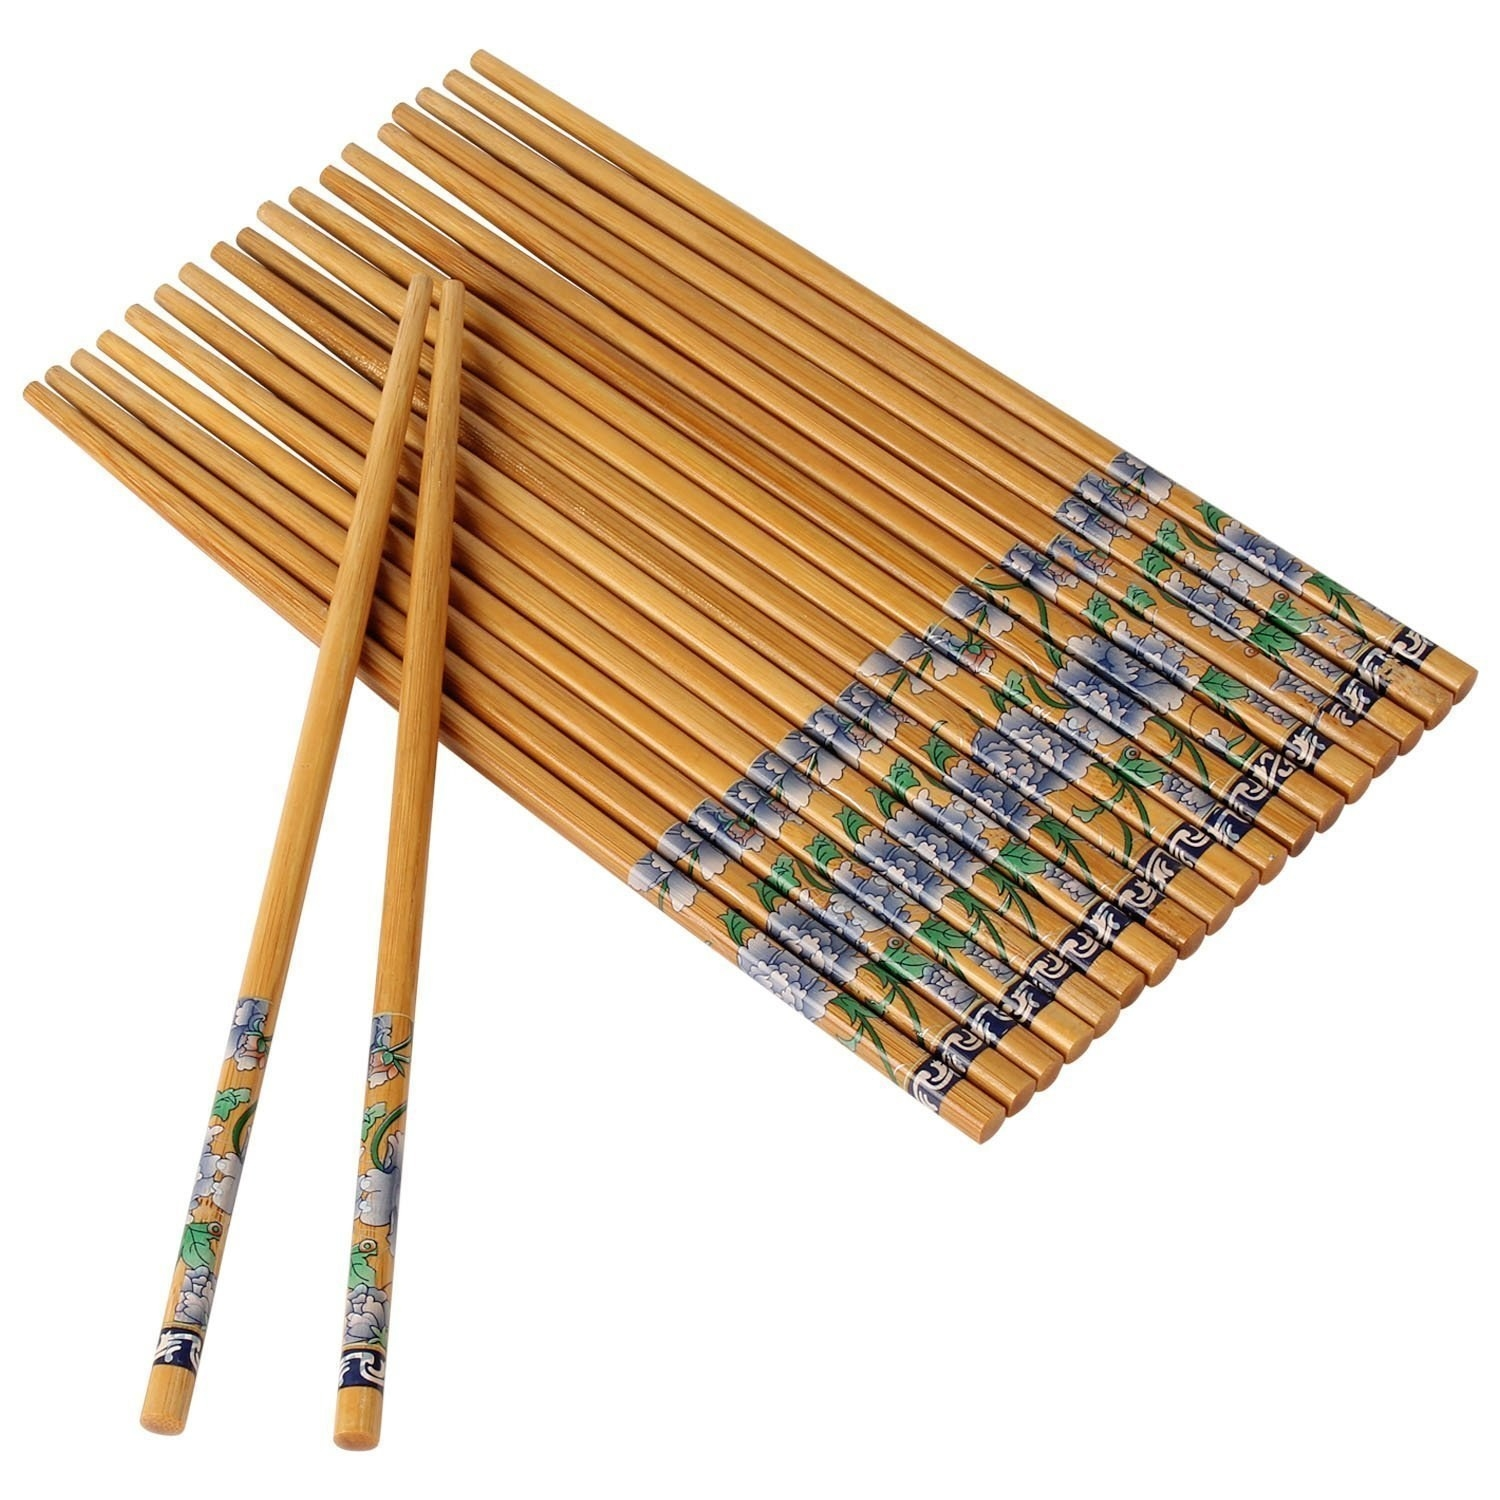 10 sets of bamboo chopsticks with a pretty blue floral design on the base.